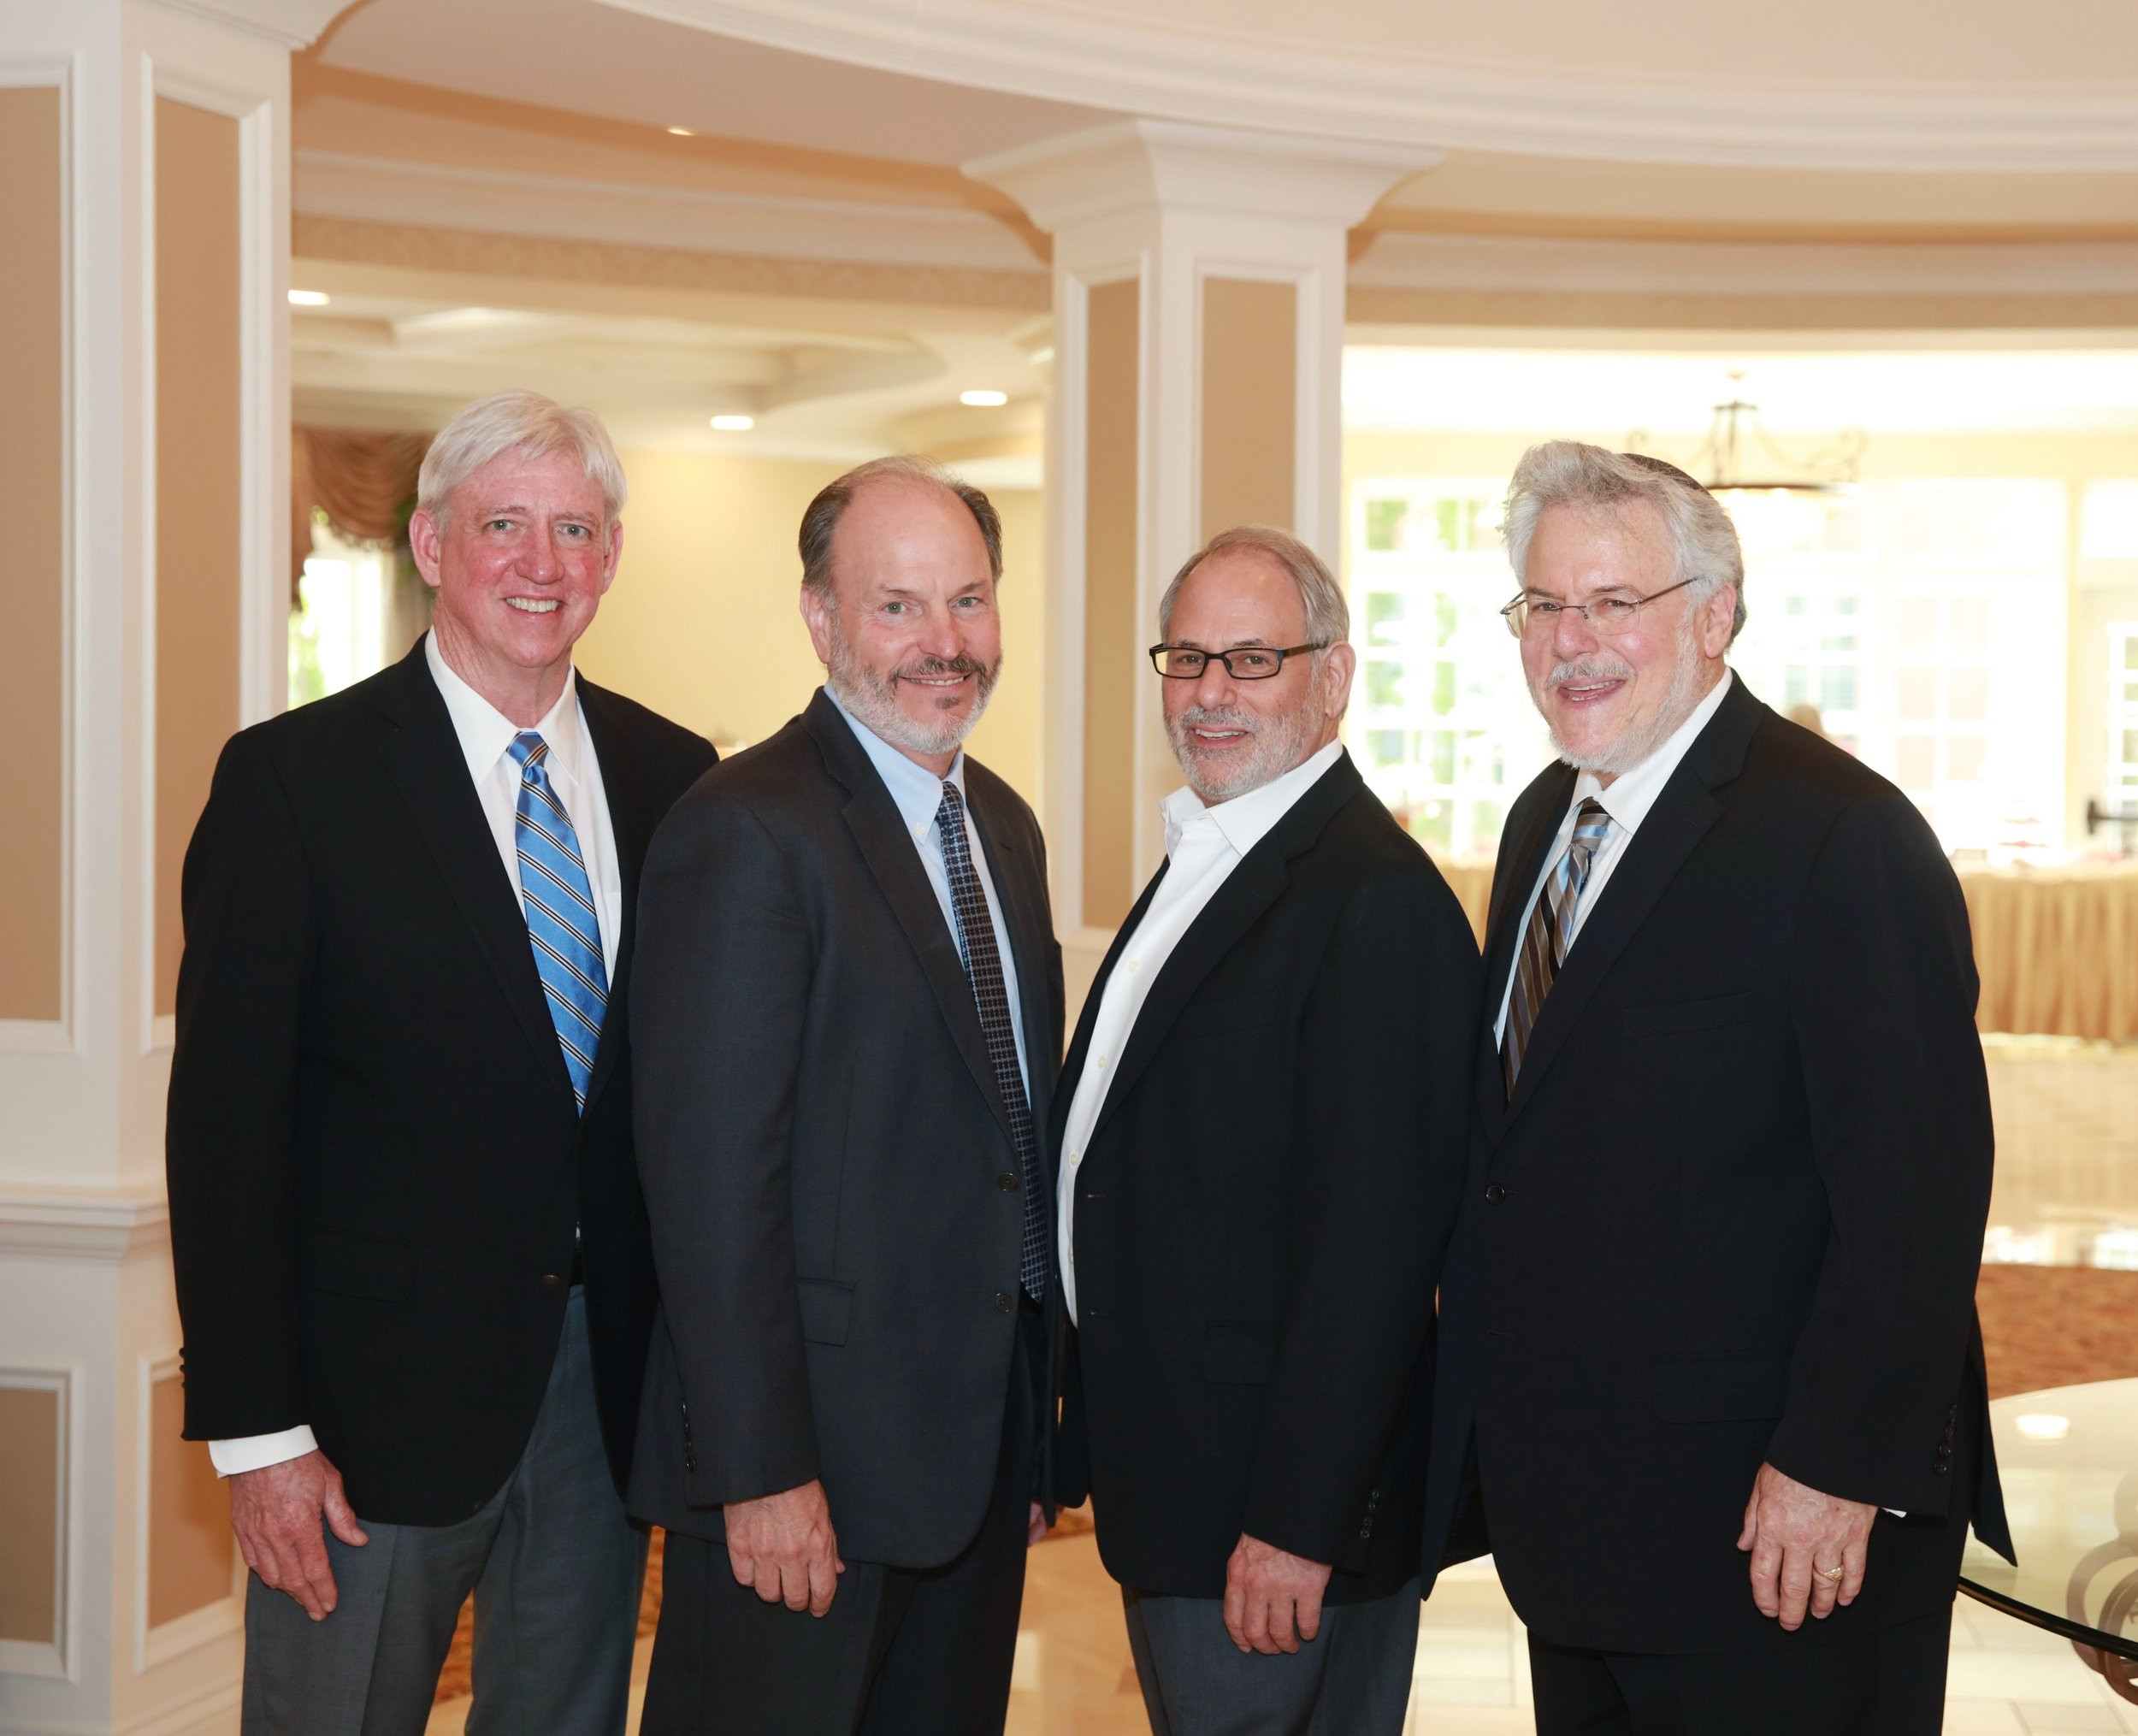 Bob Leonard, Director of Operations for The Gatesworth Communities; Mike Doyle, Chief Financial Officer; David Smith, Co-owner of The Gatesworth and Charles Deutsch, Co-owner of The Gatesworth.